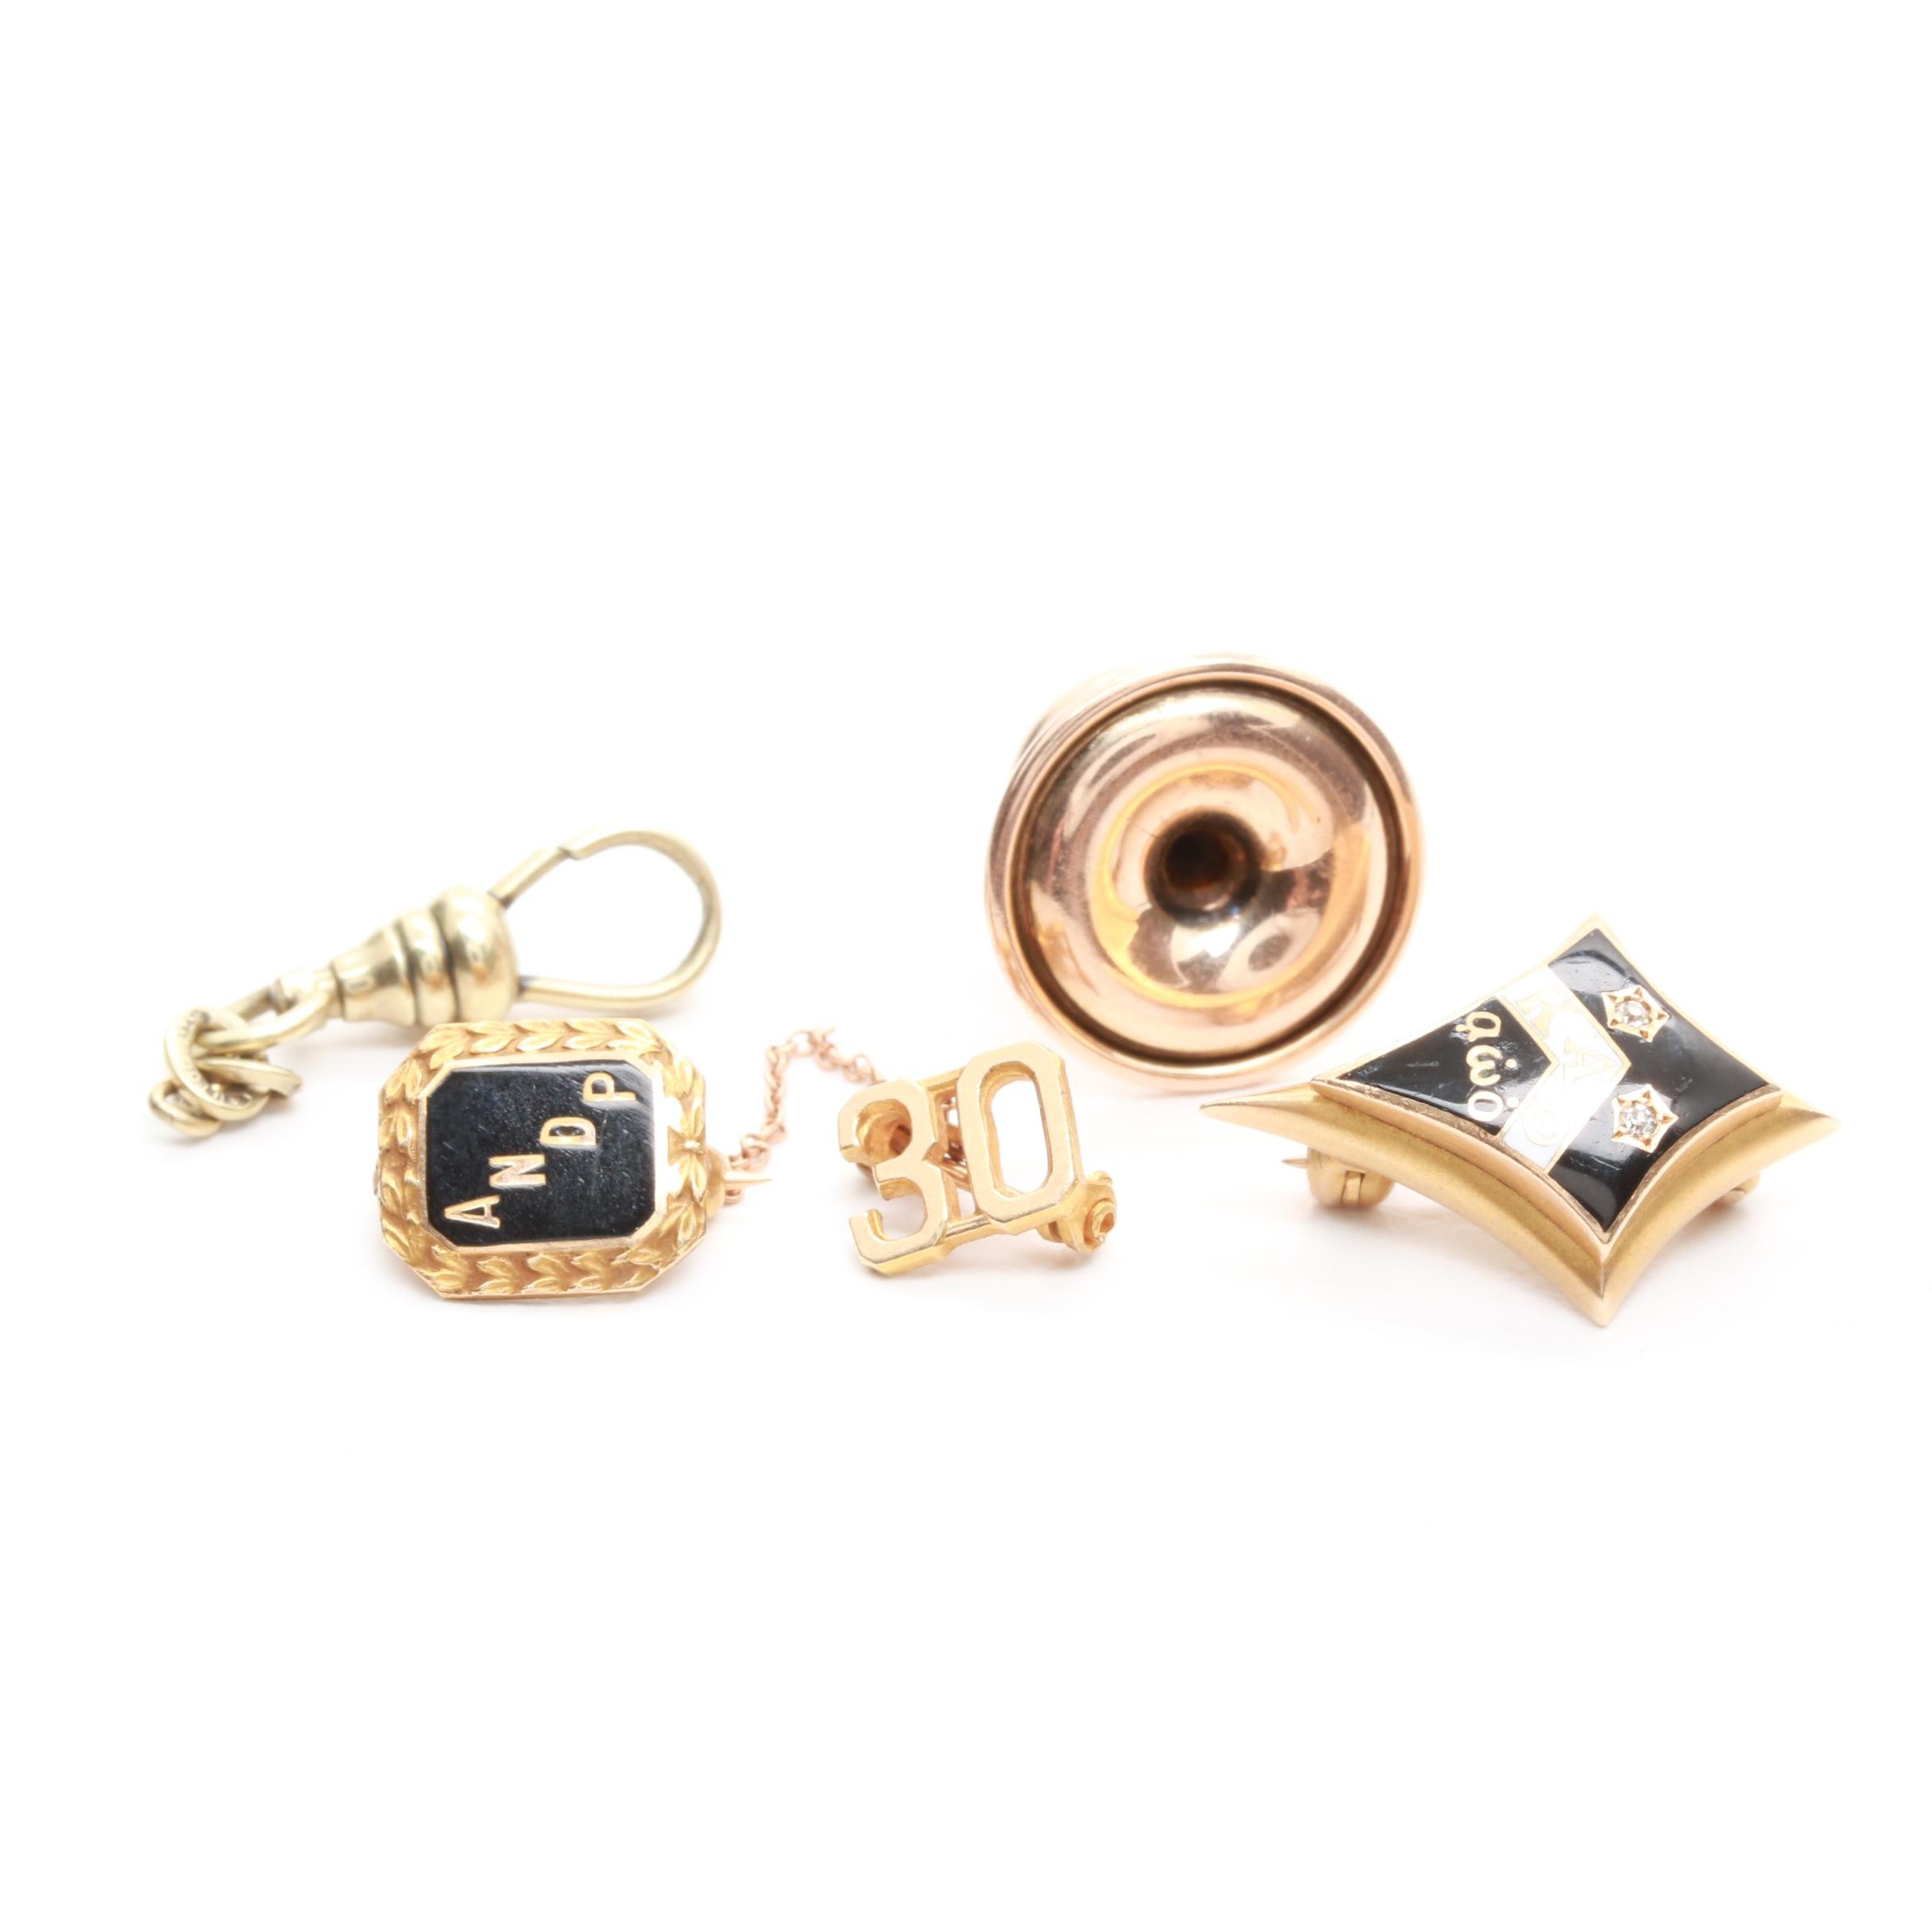 10K and 14K Yellow and Rose Gold Diamond and Enamel Jewelry